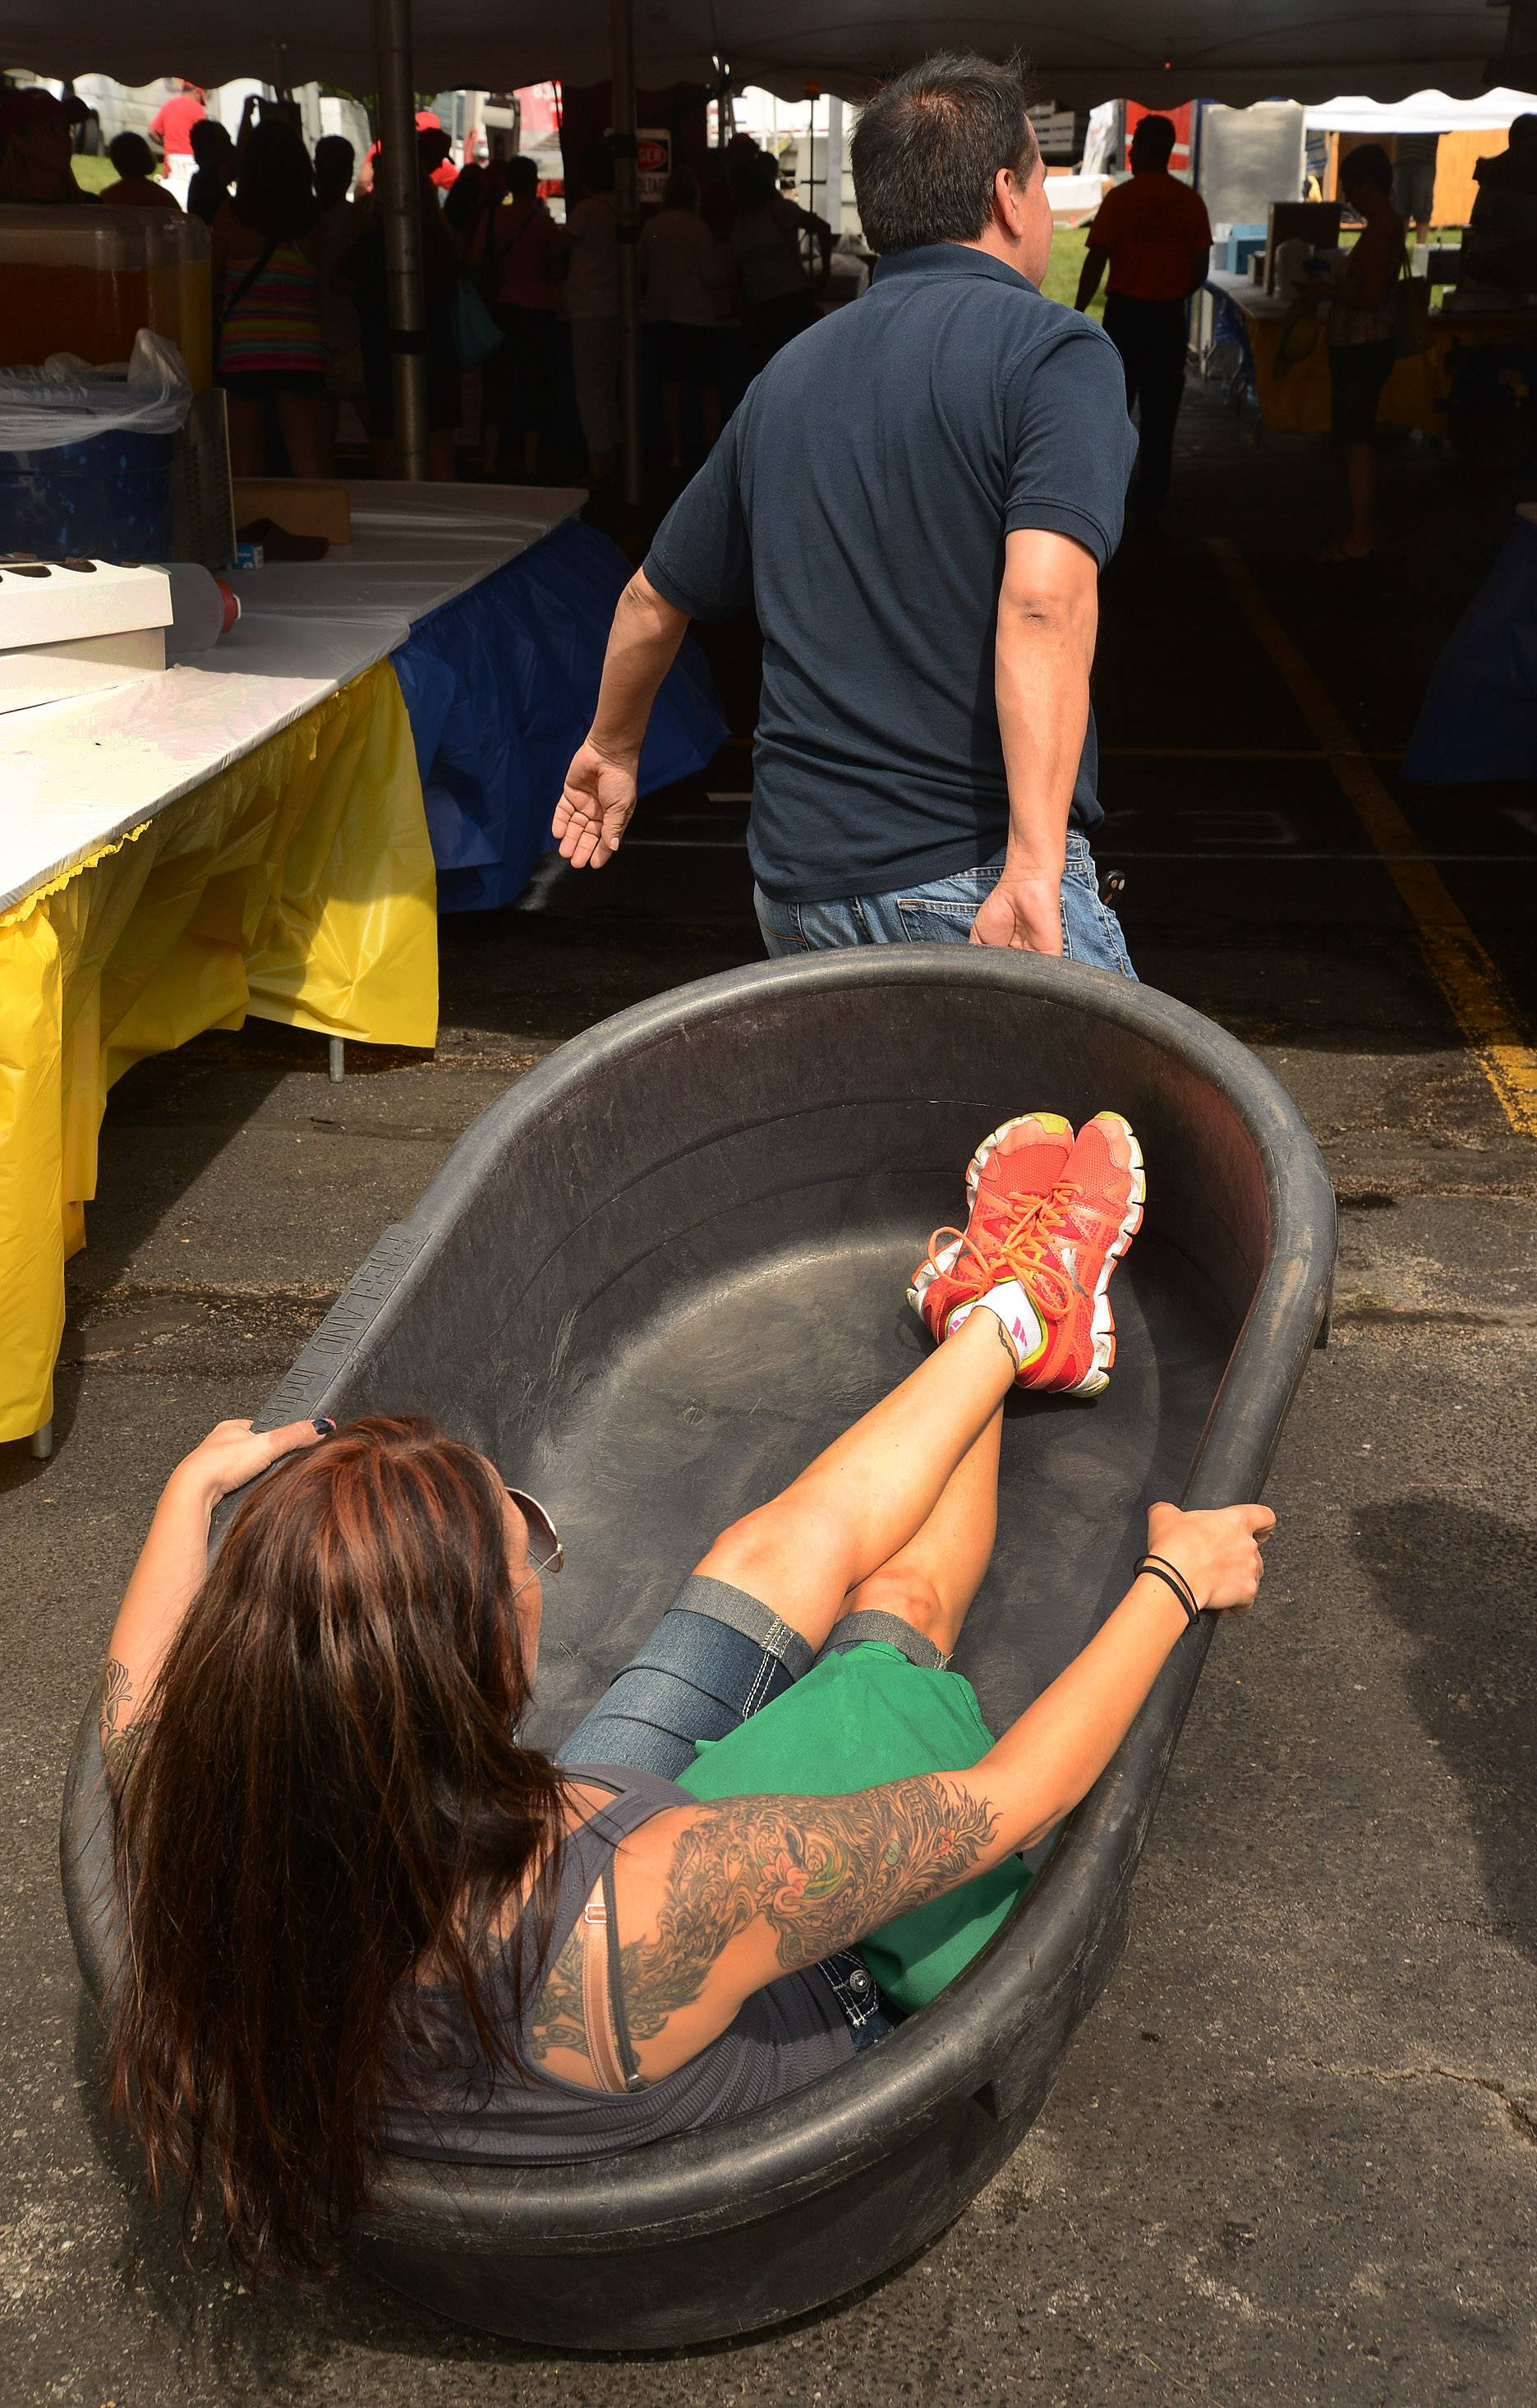 Jose Rodriguez hauls away Nikki Czapiga as she relaxes in the beer and ice tub while setting up for Village Tavern and Grill on the first day of Schaumburg's 44th annual Septemberfest.